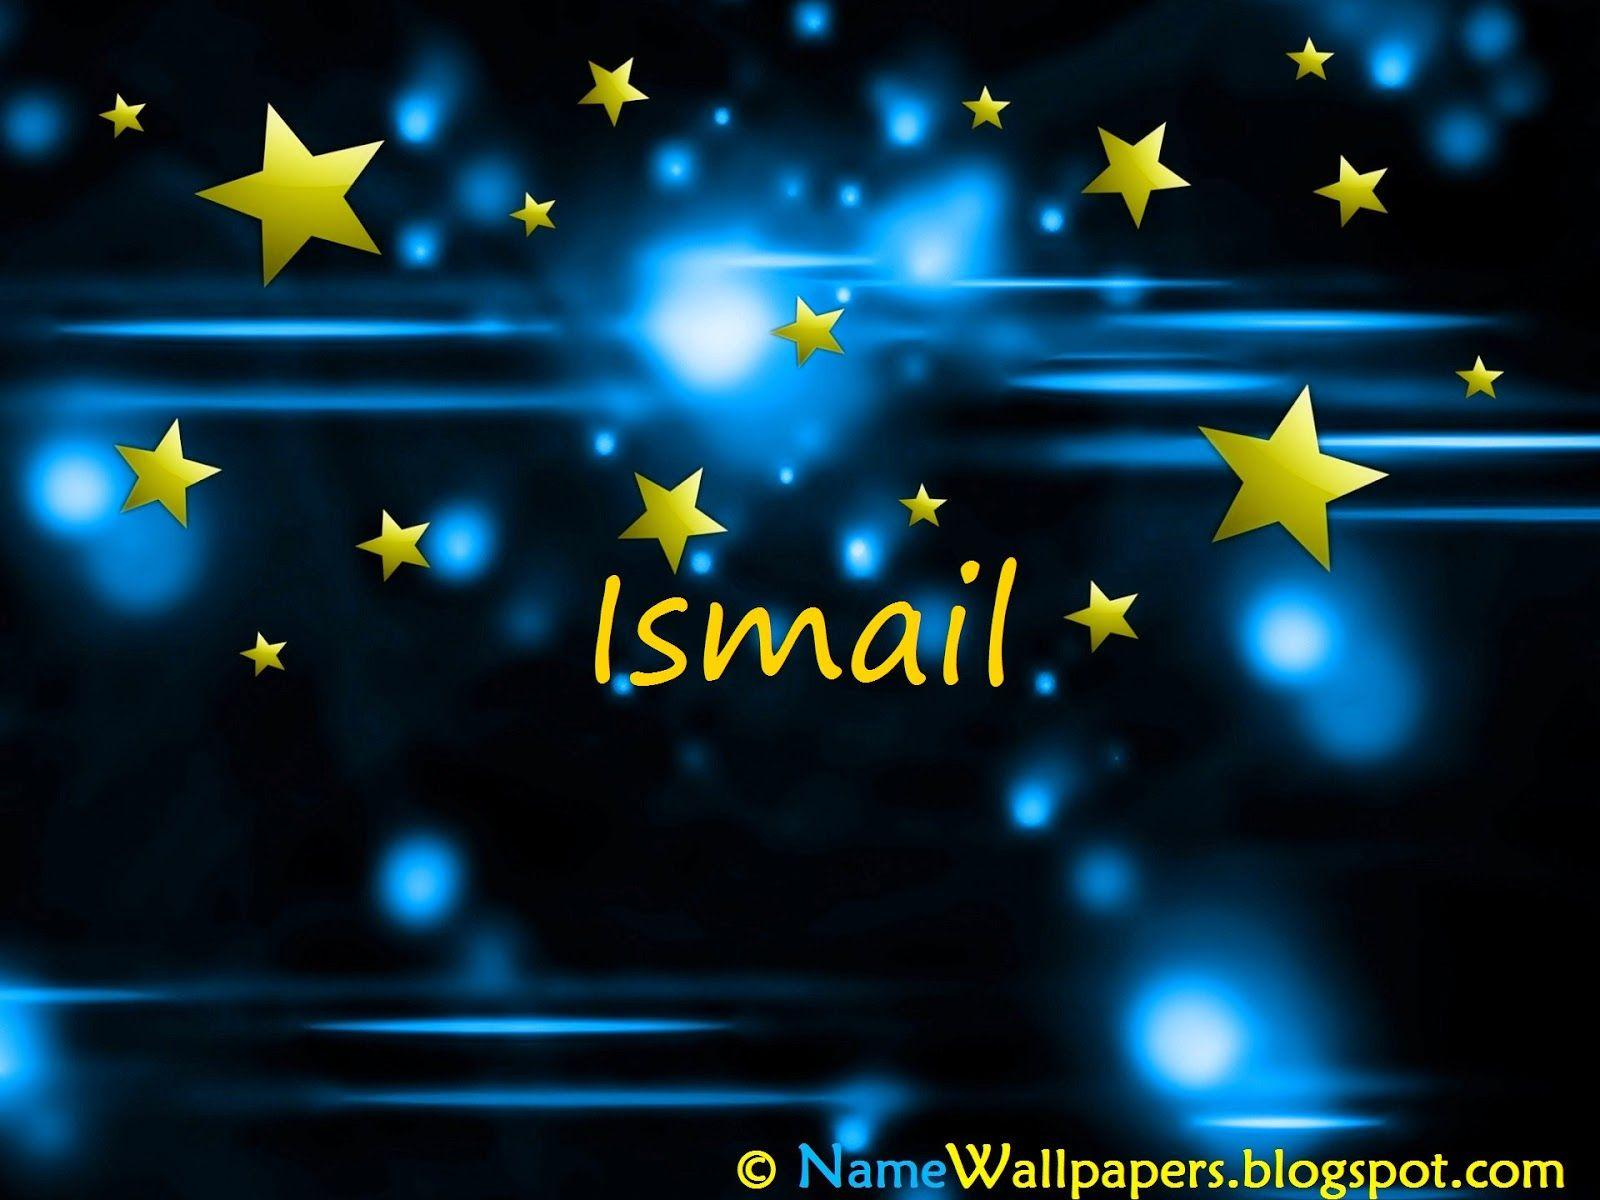 HD Wallpapers Ismail Name - Wallpaper Cave